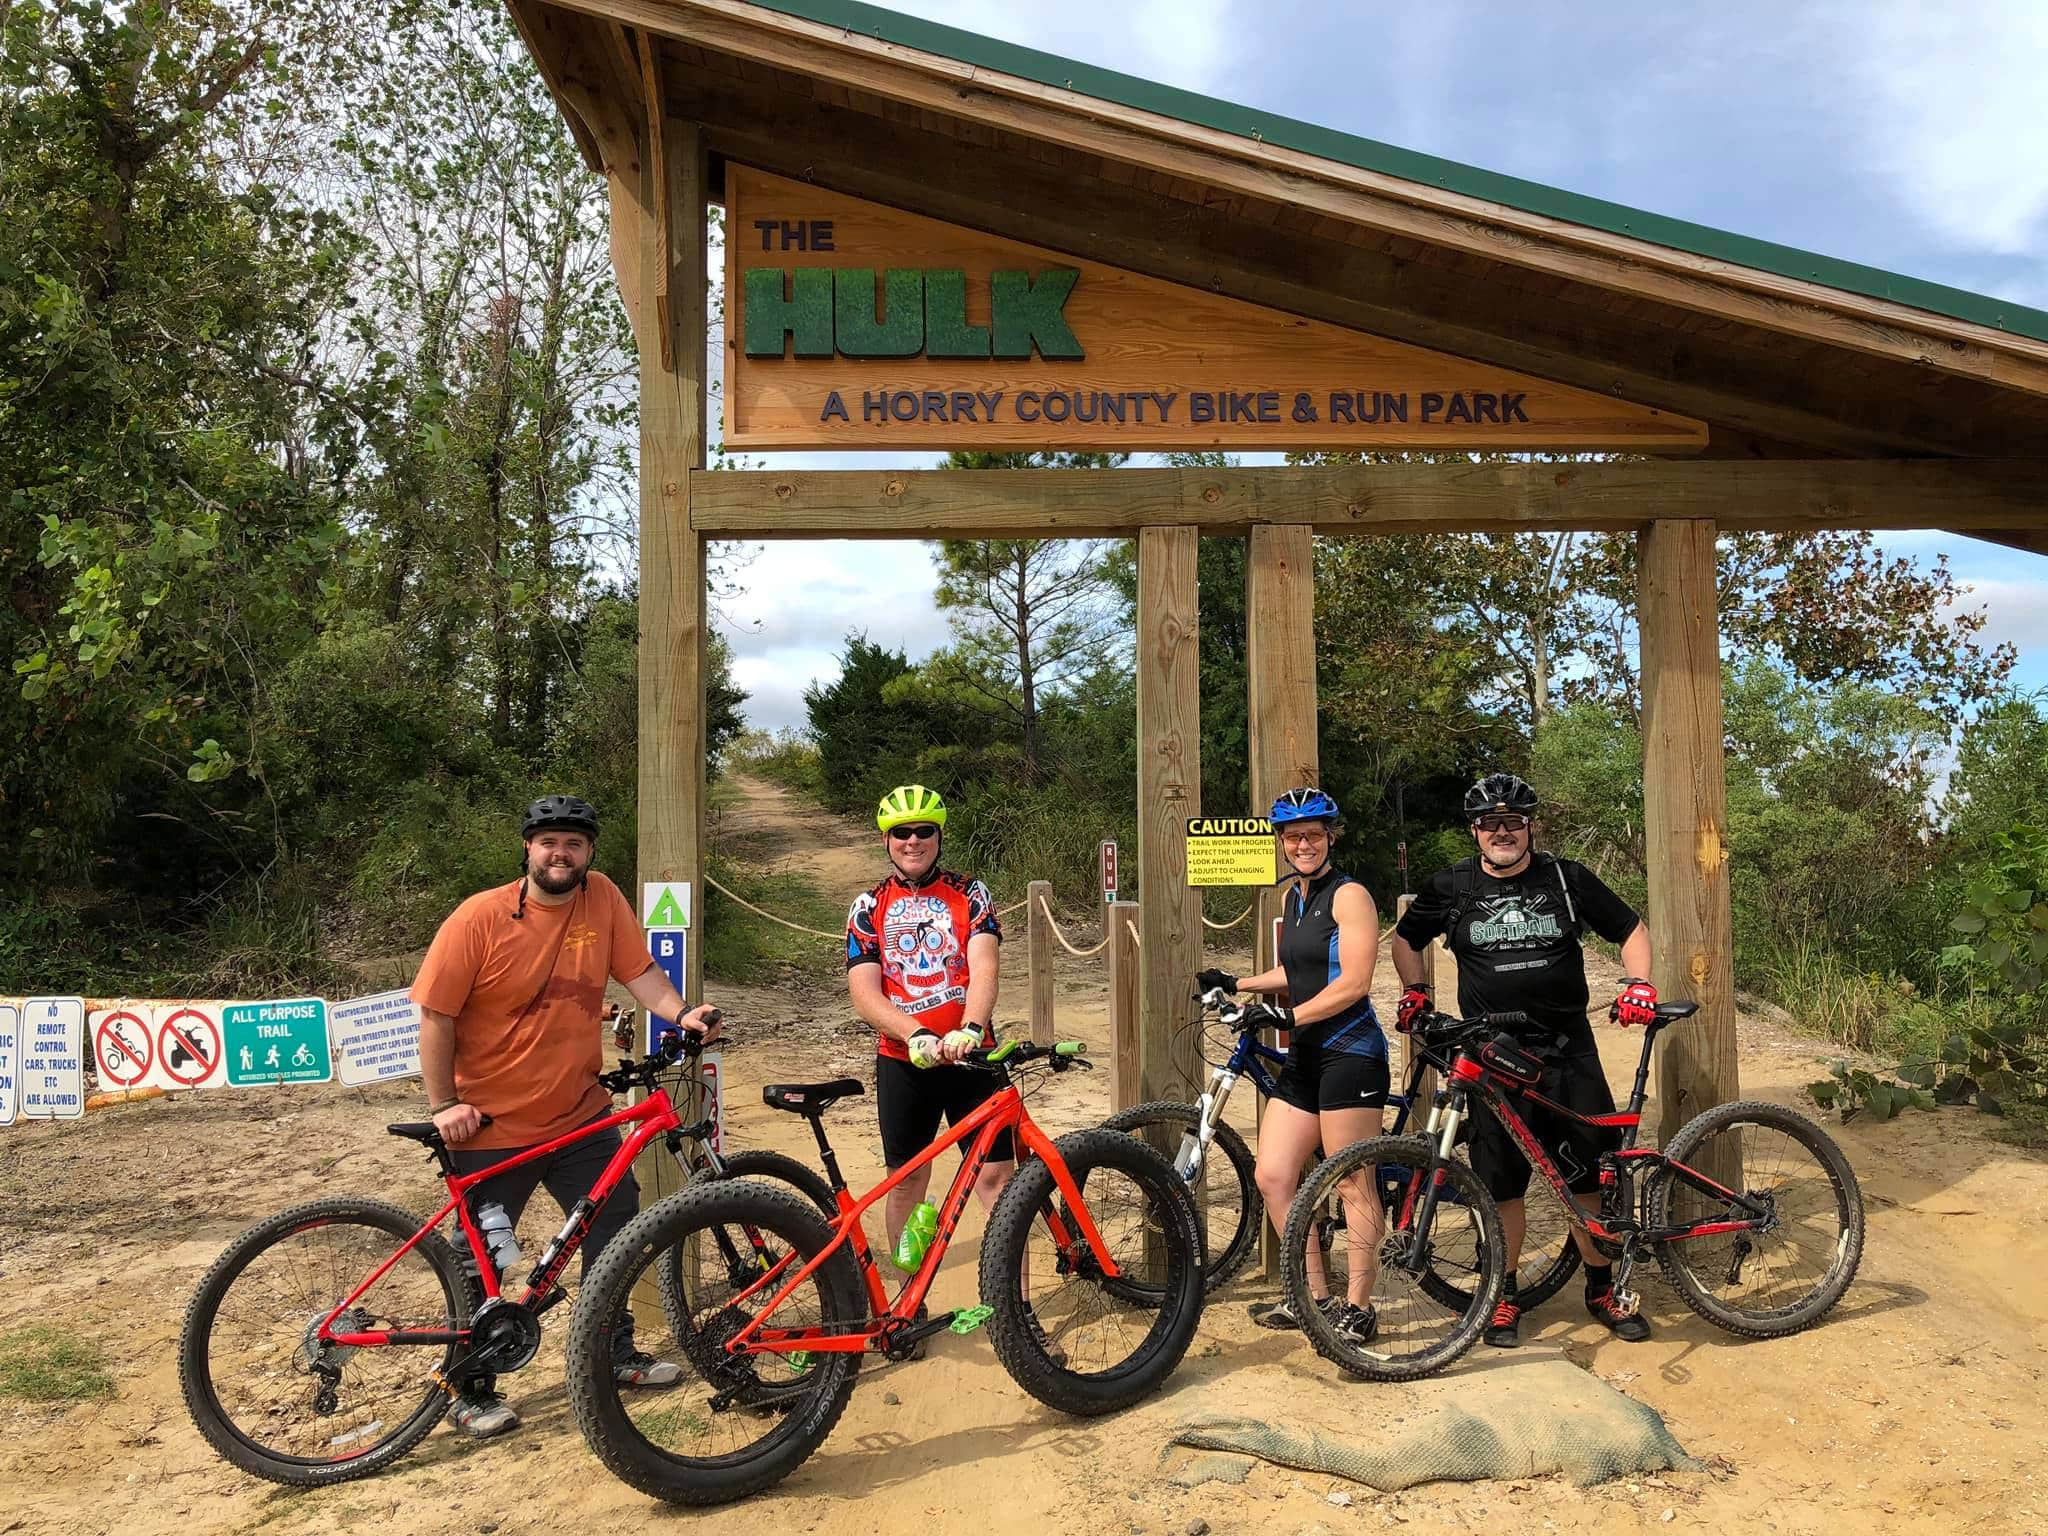 Horry County Bike & Run park